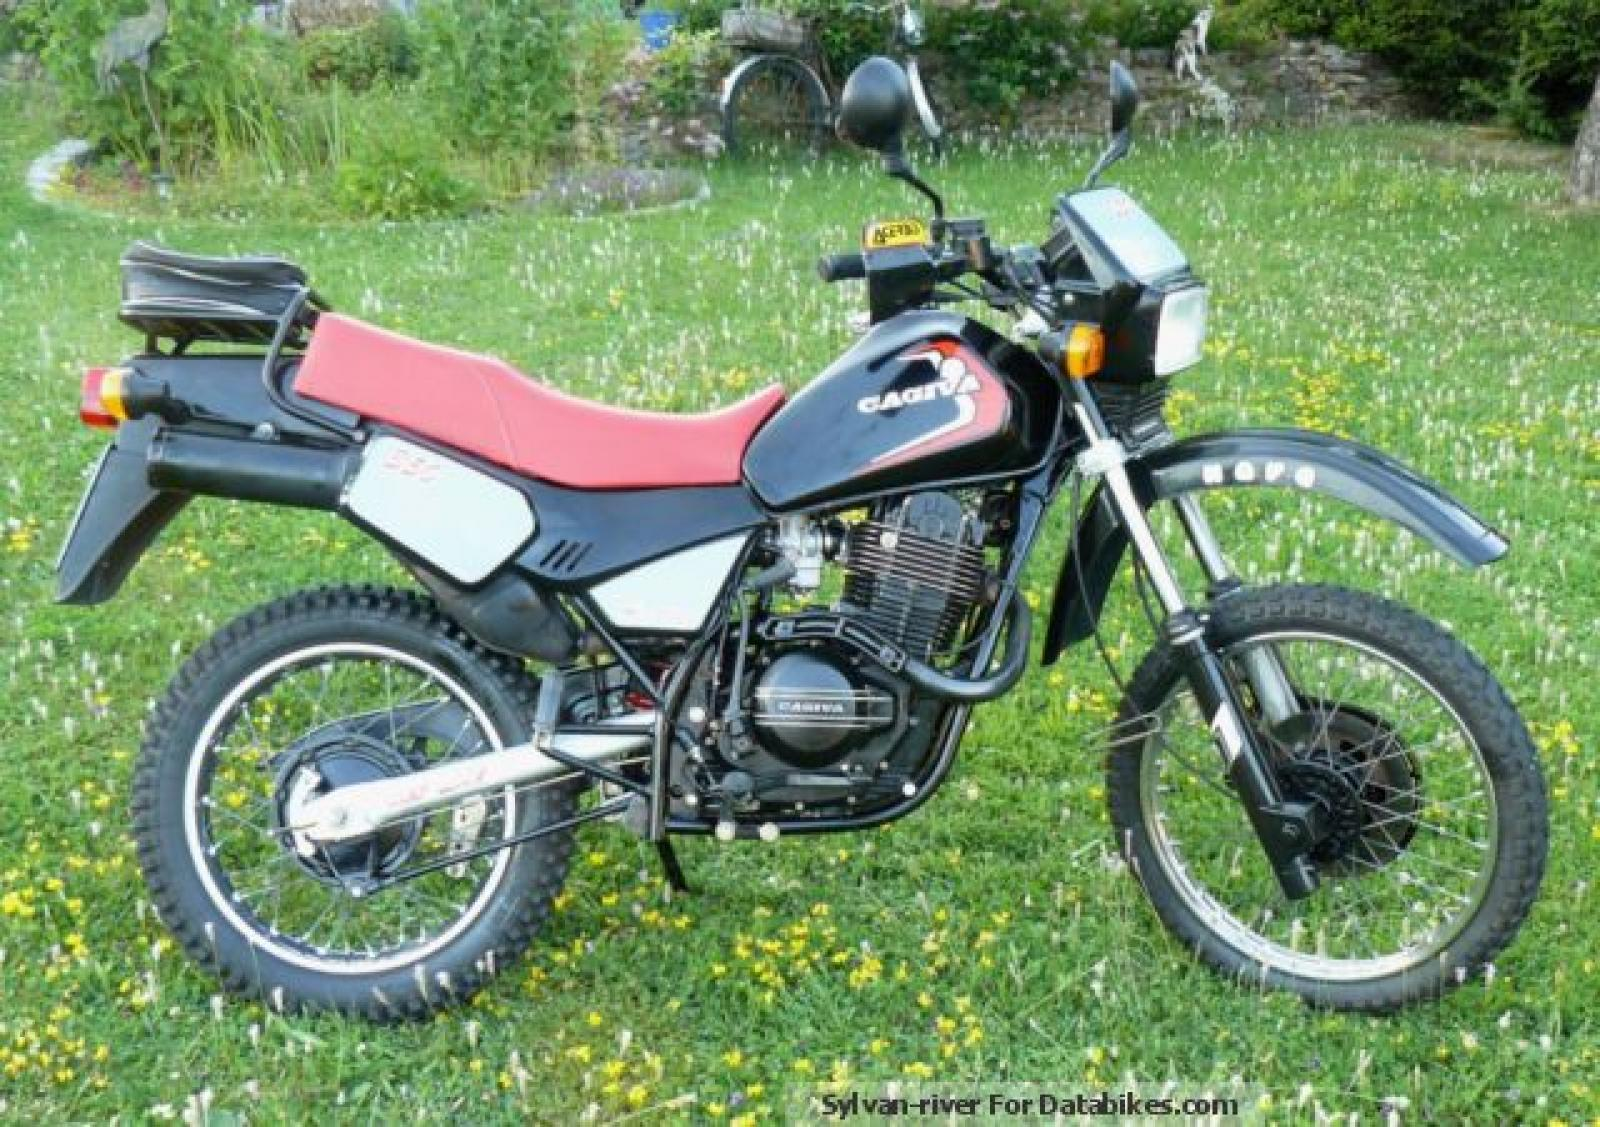 Cagiva SX 250 1983 images #67995